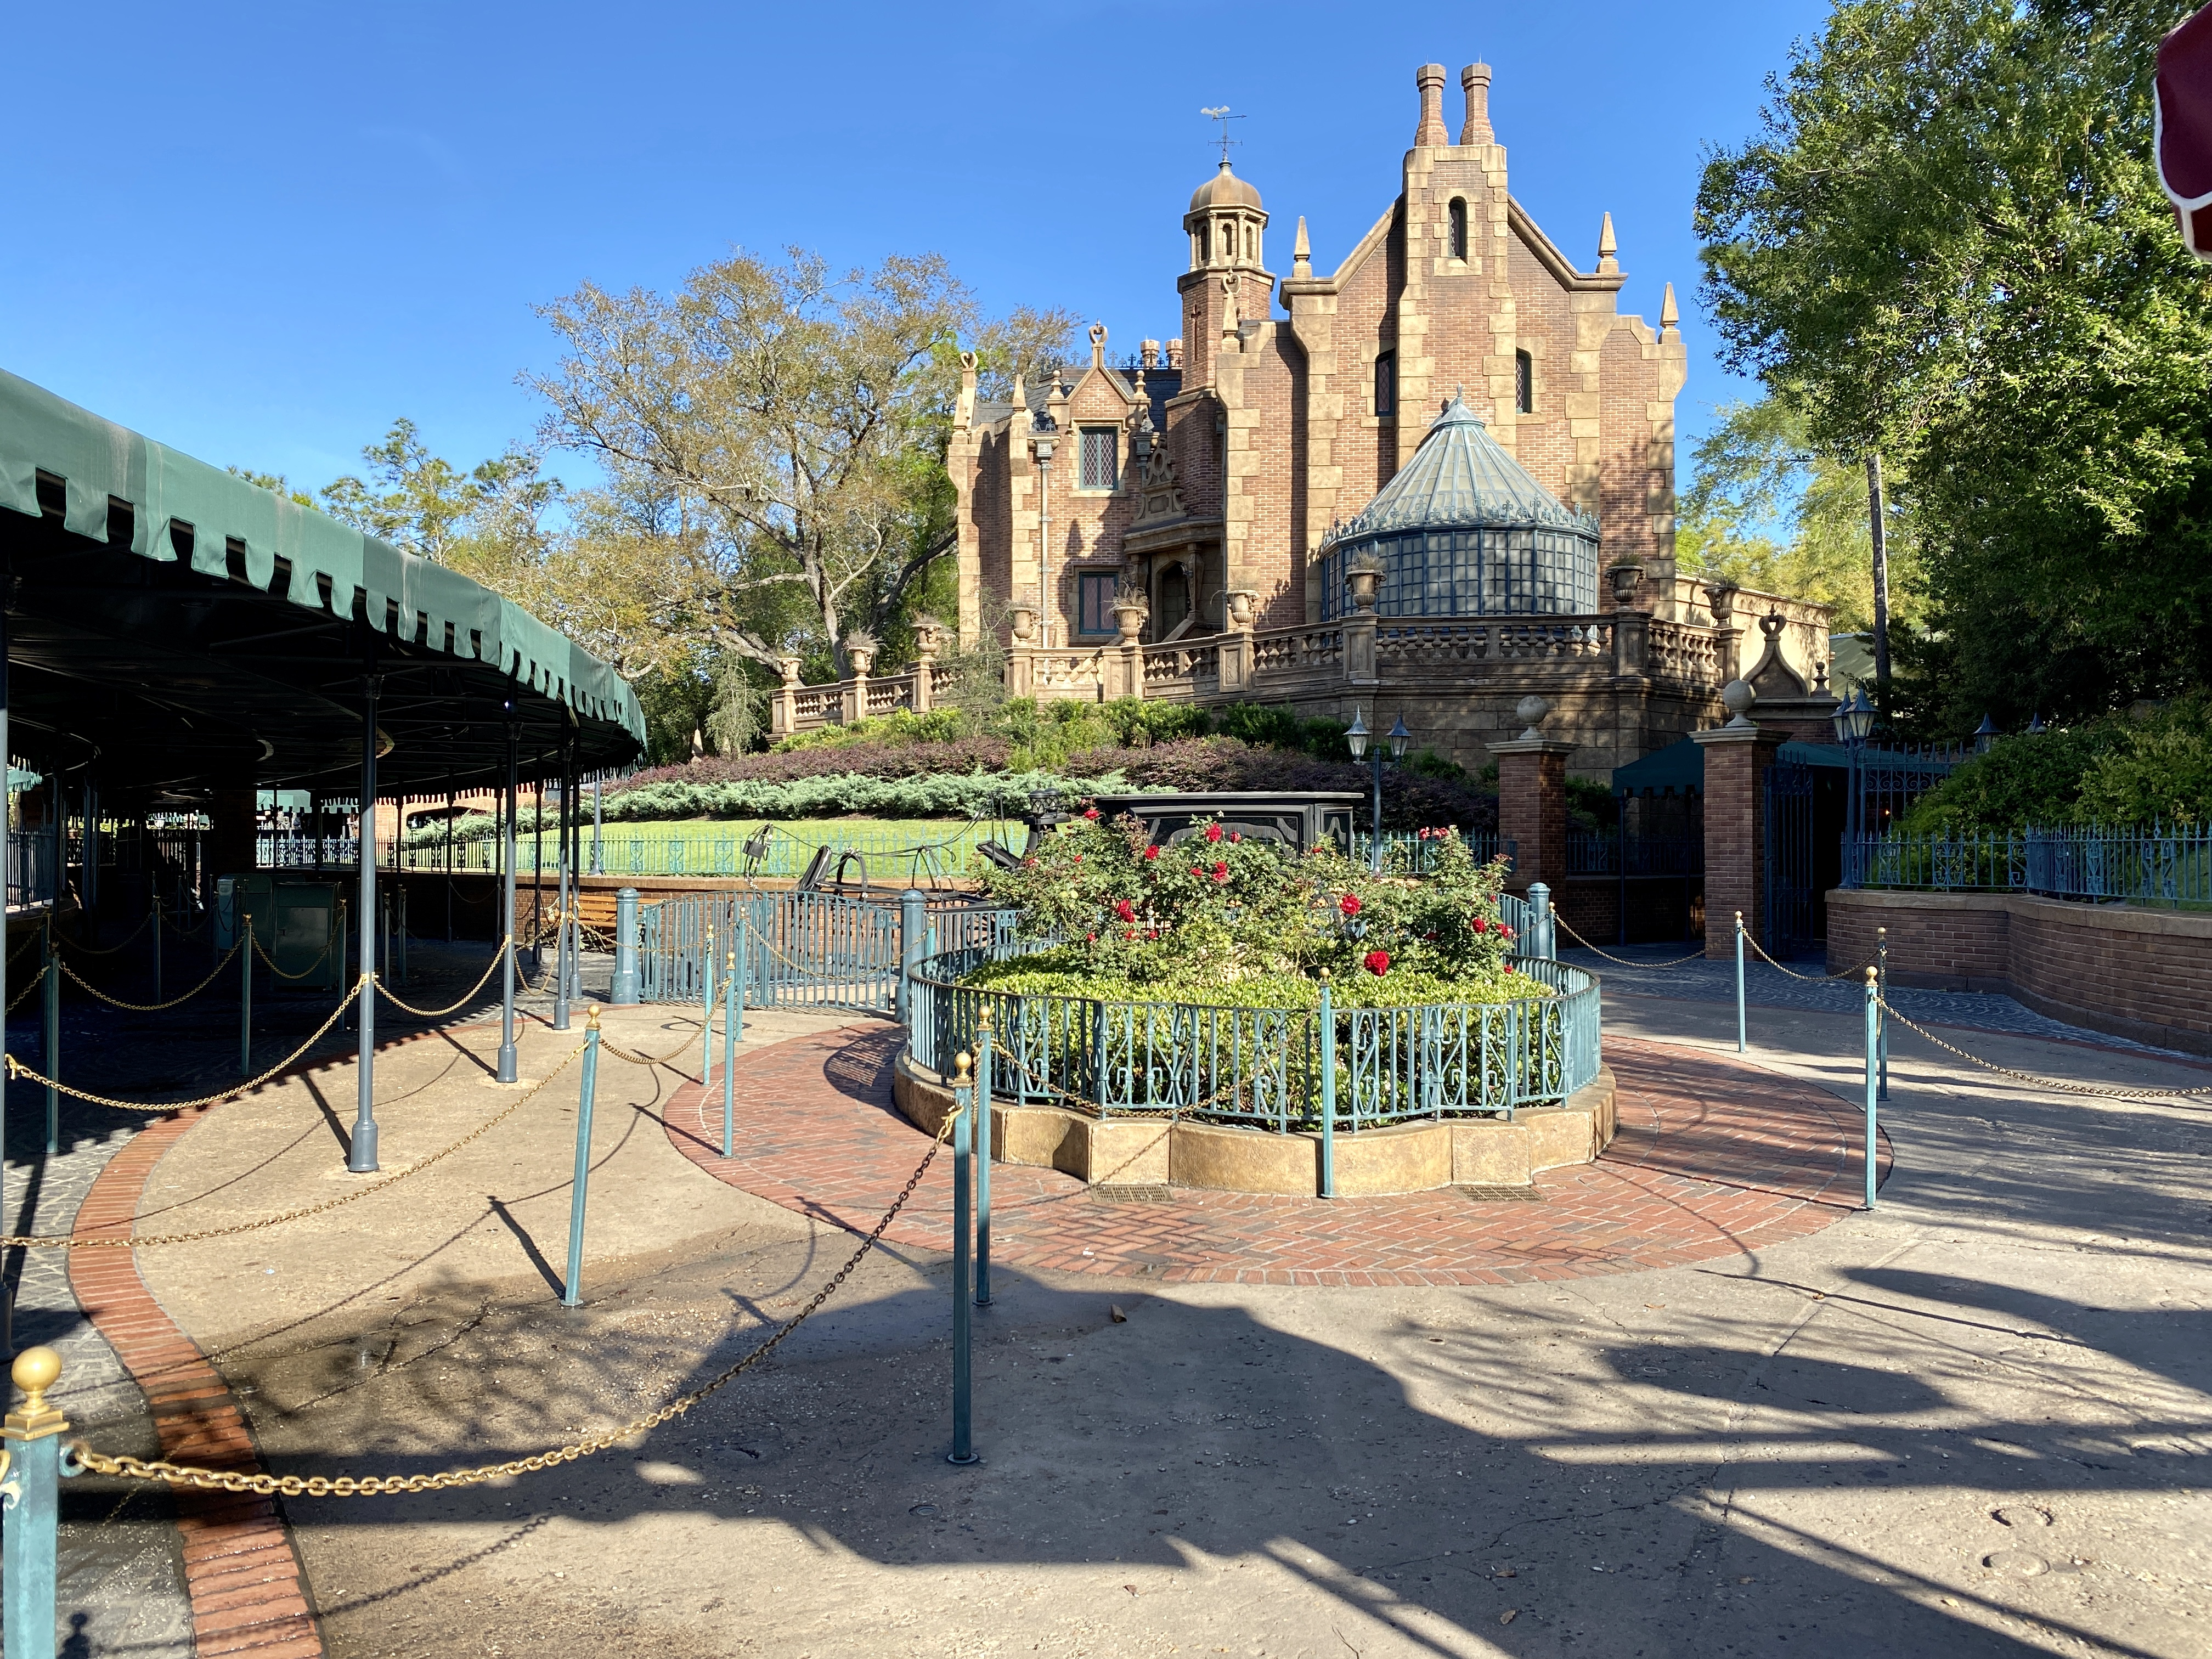 Haunted mansion down